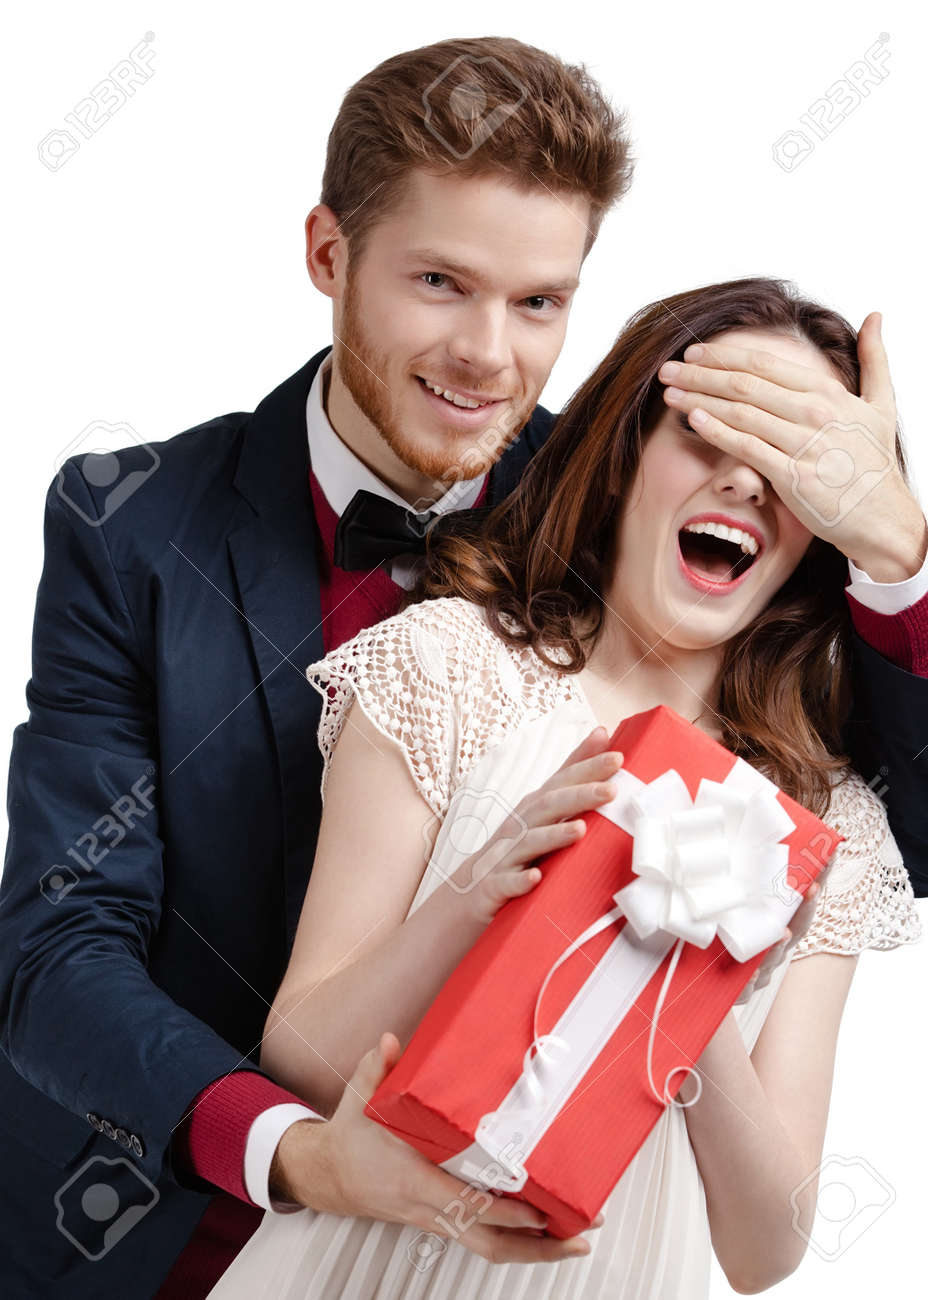 Man closes eyes of his girlfriend presenting a gift wrapped in red paper, isolated on white Stock Photo - 17457752